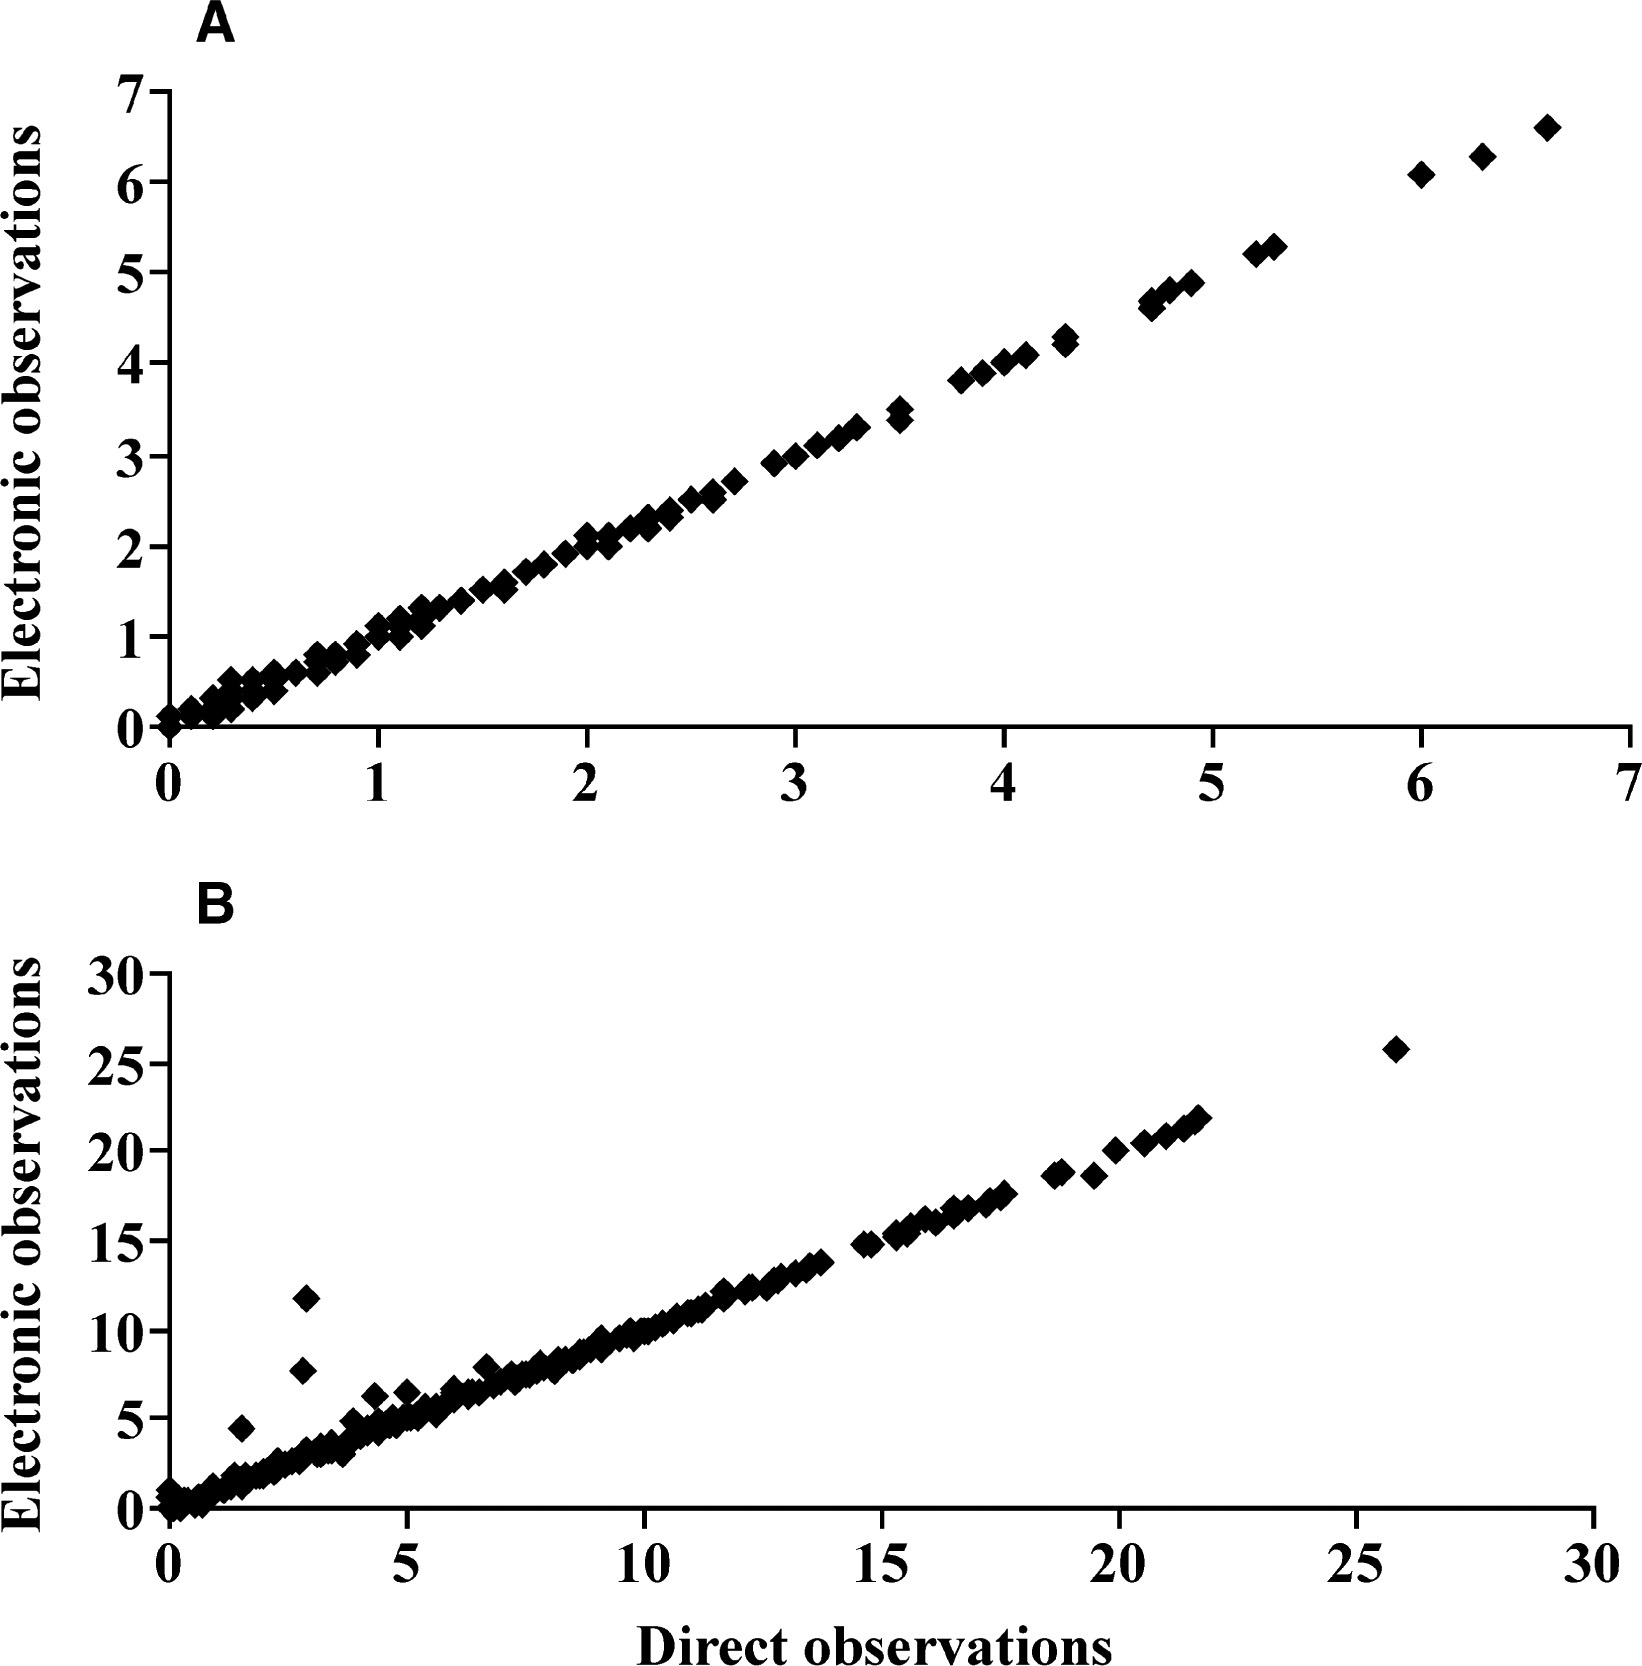 Technical Note Validation Of A System For Monitoring Individual Feeding And Drinking Behavior